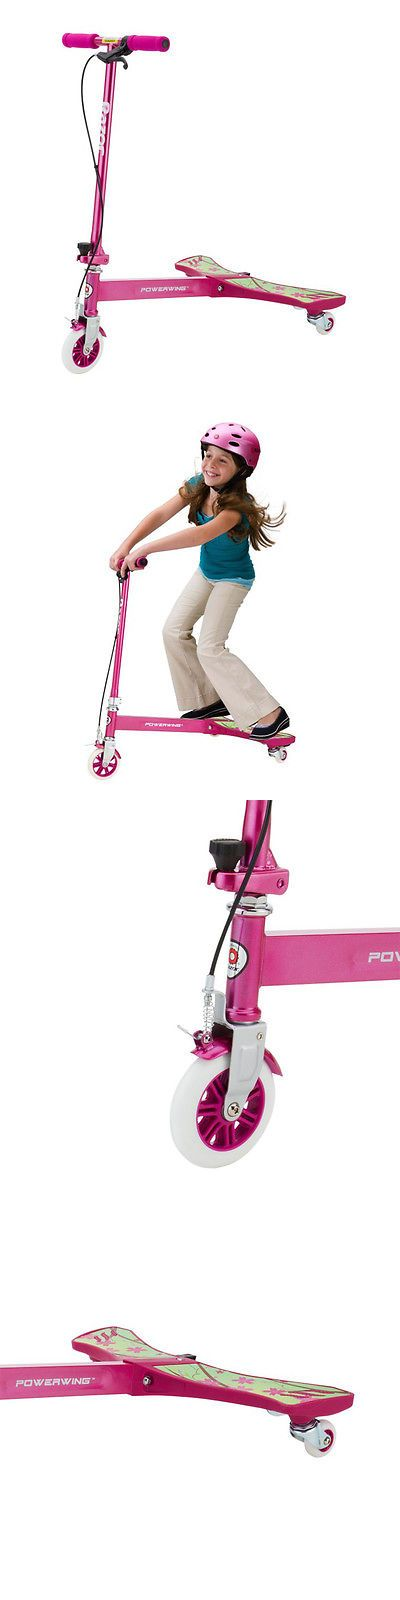 Other Scooters 11329: Razor Powerwing 125Mm 3 Wheel Inclined Caster Powered Scooter, Sweet Pea Pink -> BUY IT NOW ONLY: $59.99 on eBay!